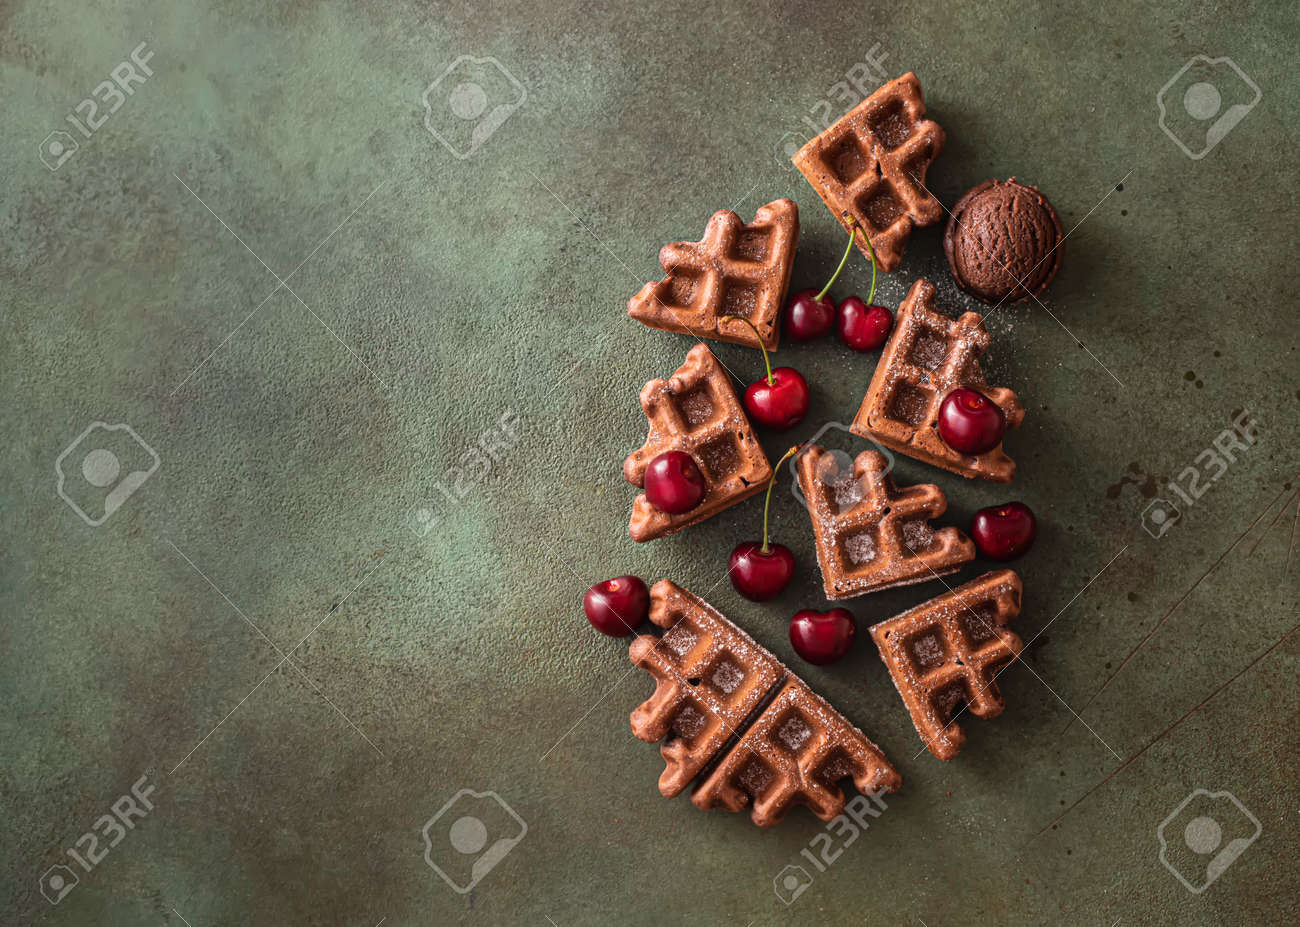 Homemade chocolate waffles with berries and chocolate ice cream. Delicious dessert or breakfast. Close-up - 171890471